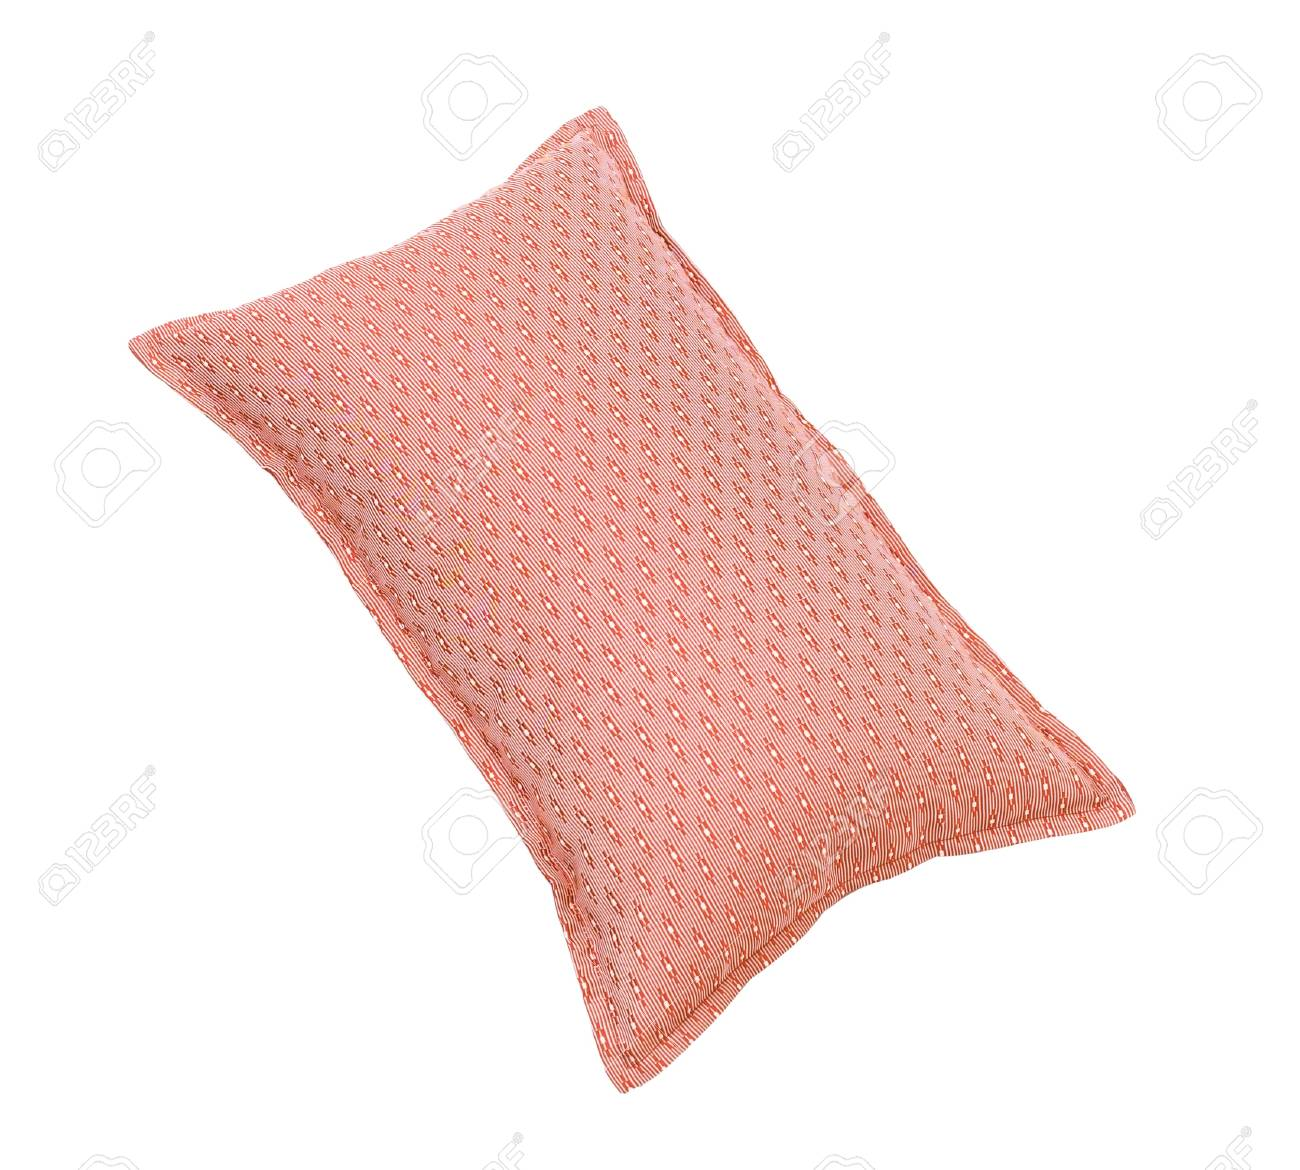 pretty red cushion isolates on white background Stock Photo - 15732921